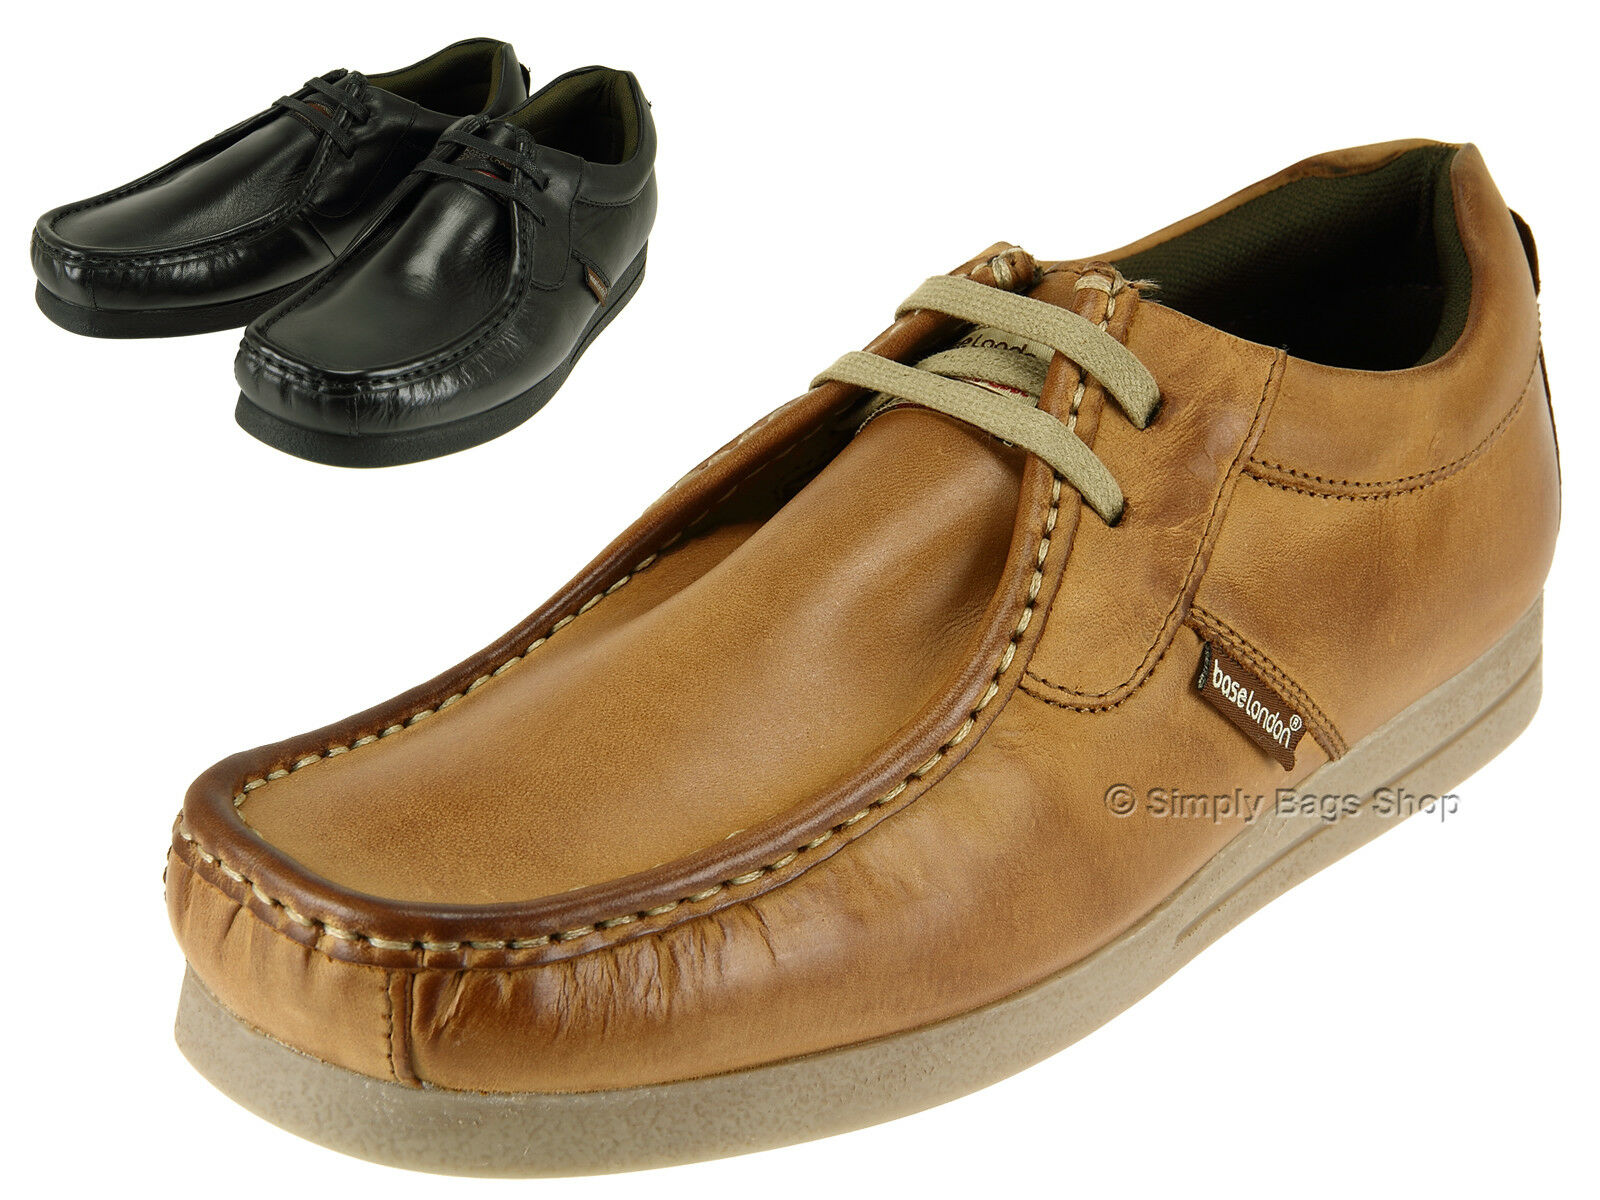 Base London Mens Soft Leather Comfortable Casual Shoes With Gripping Rubber Sole